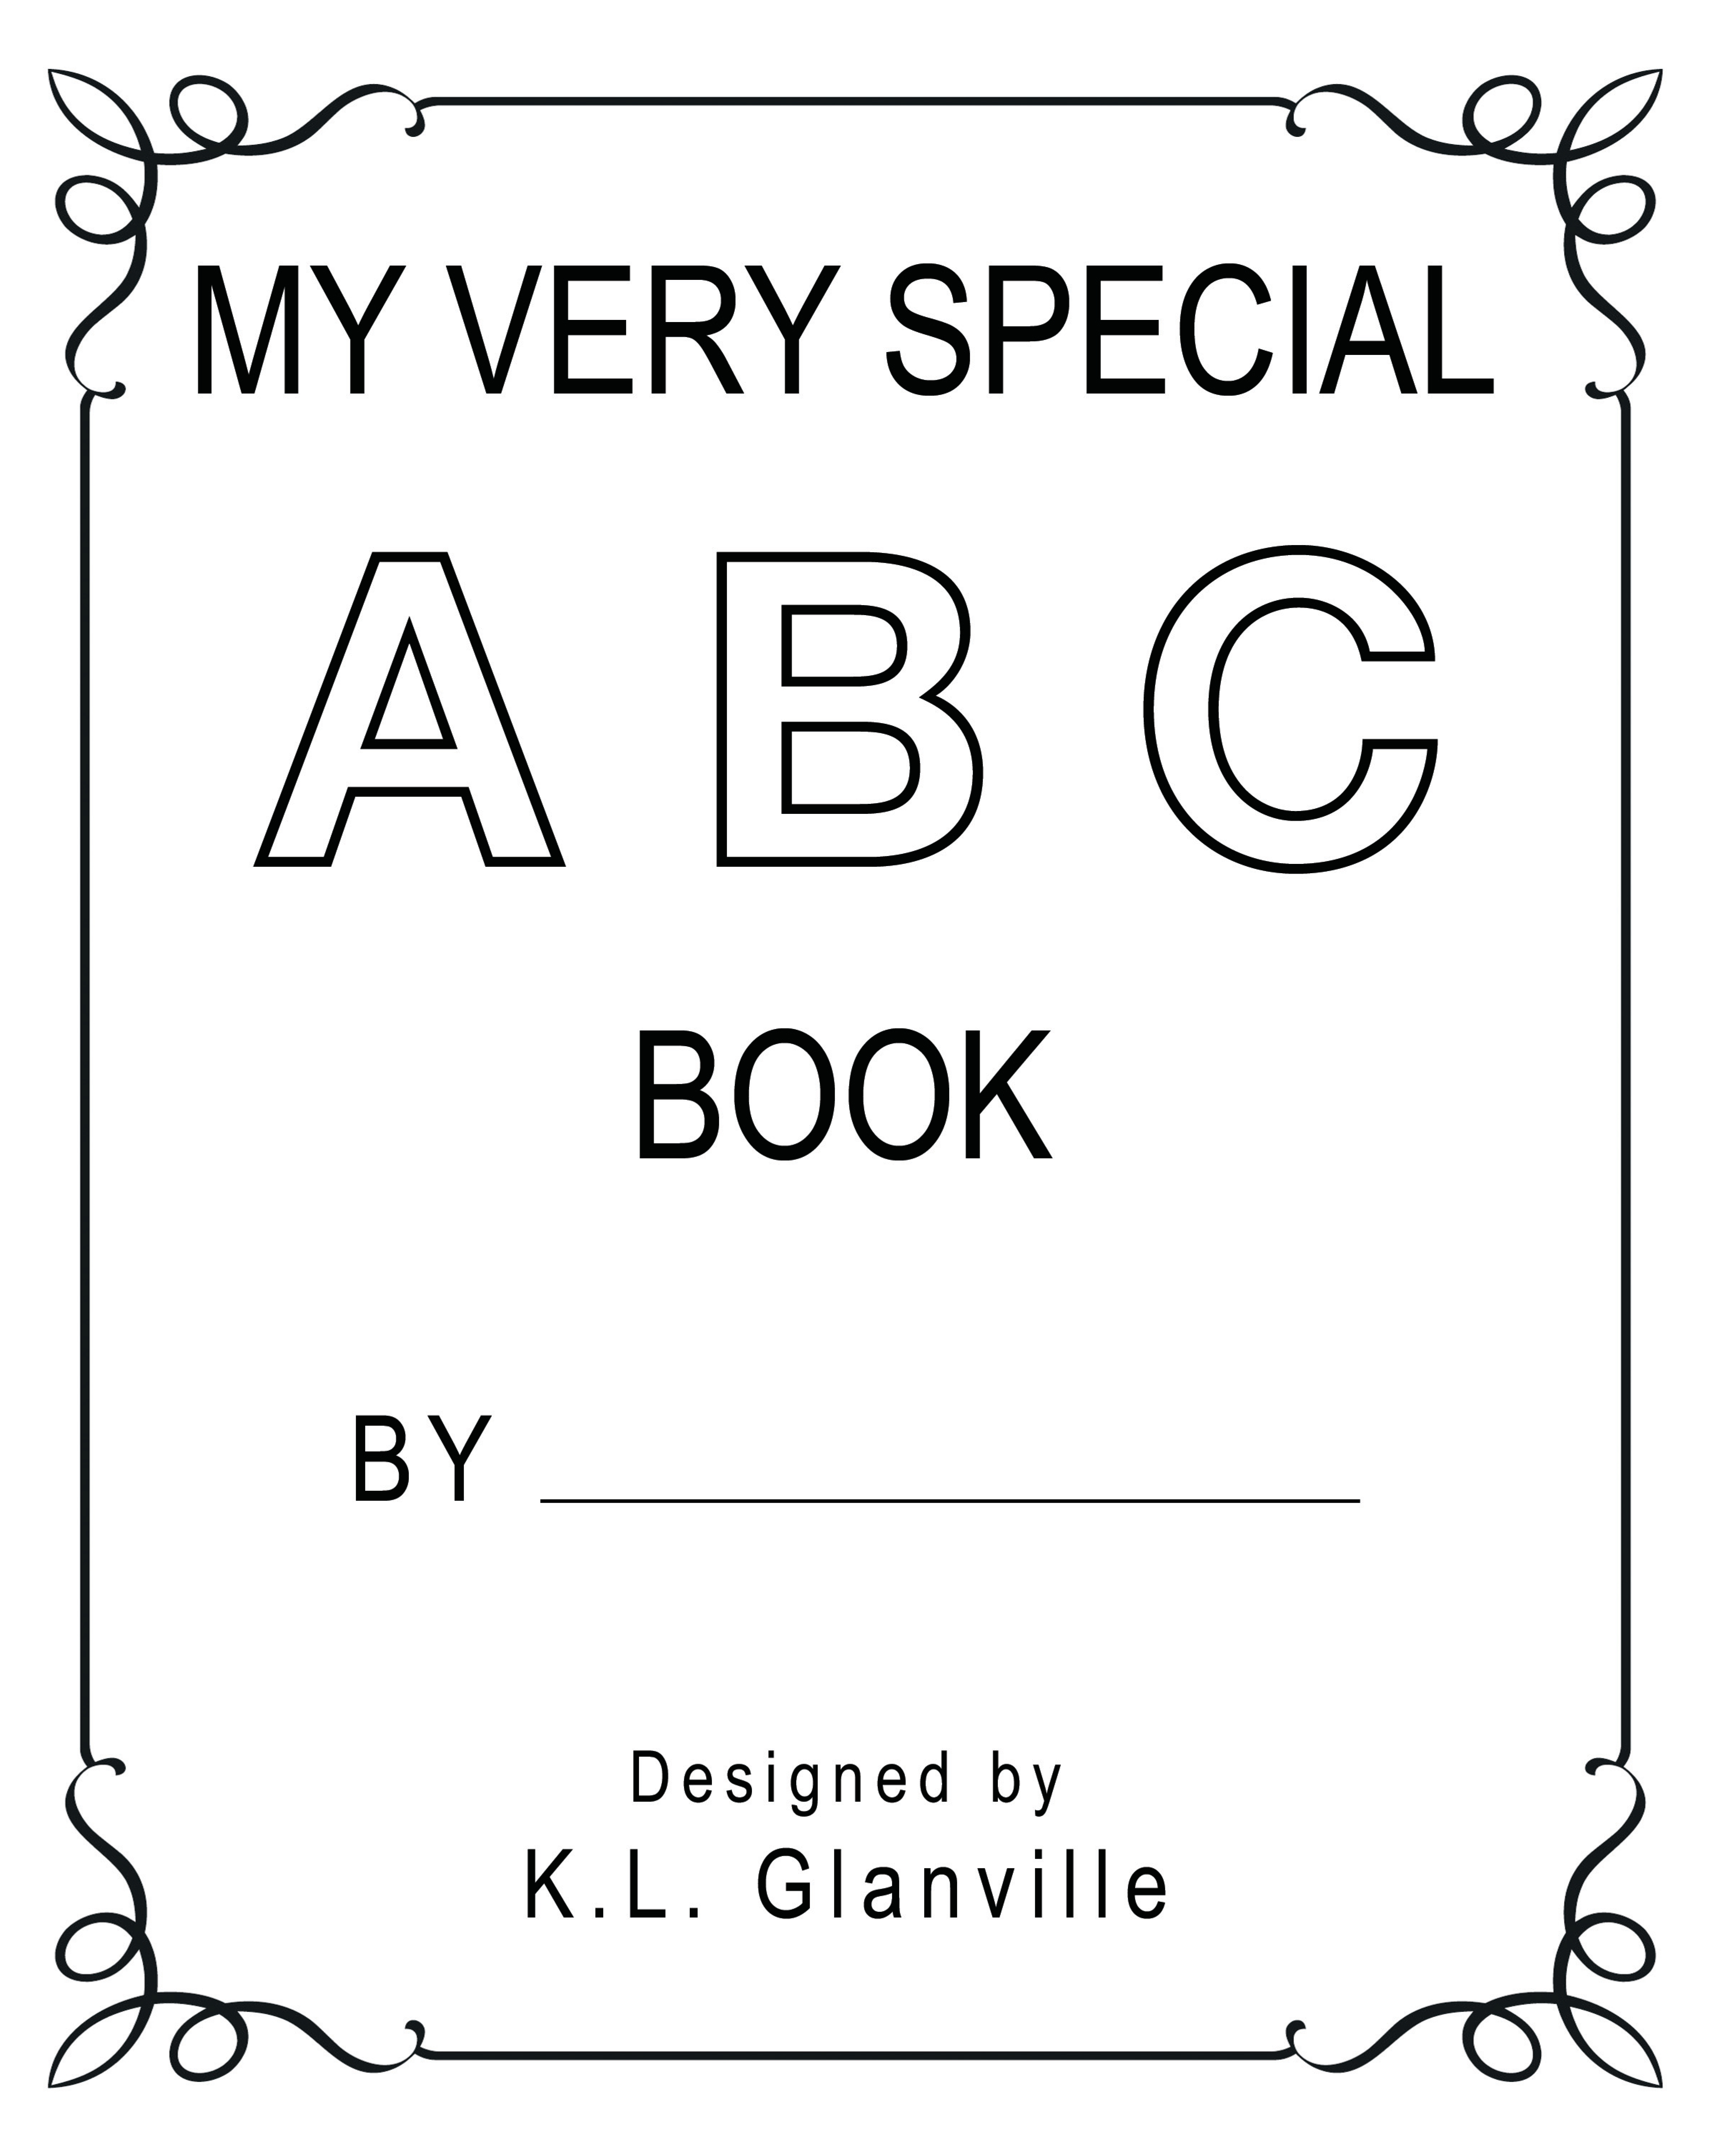 Abc Book Cover Printable ~ My very special abc book first few pages k l glanville